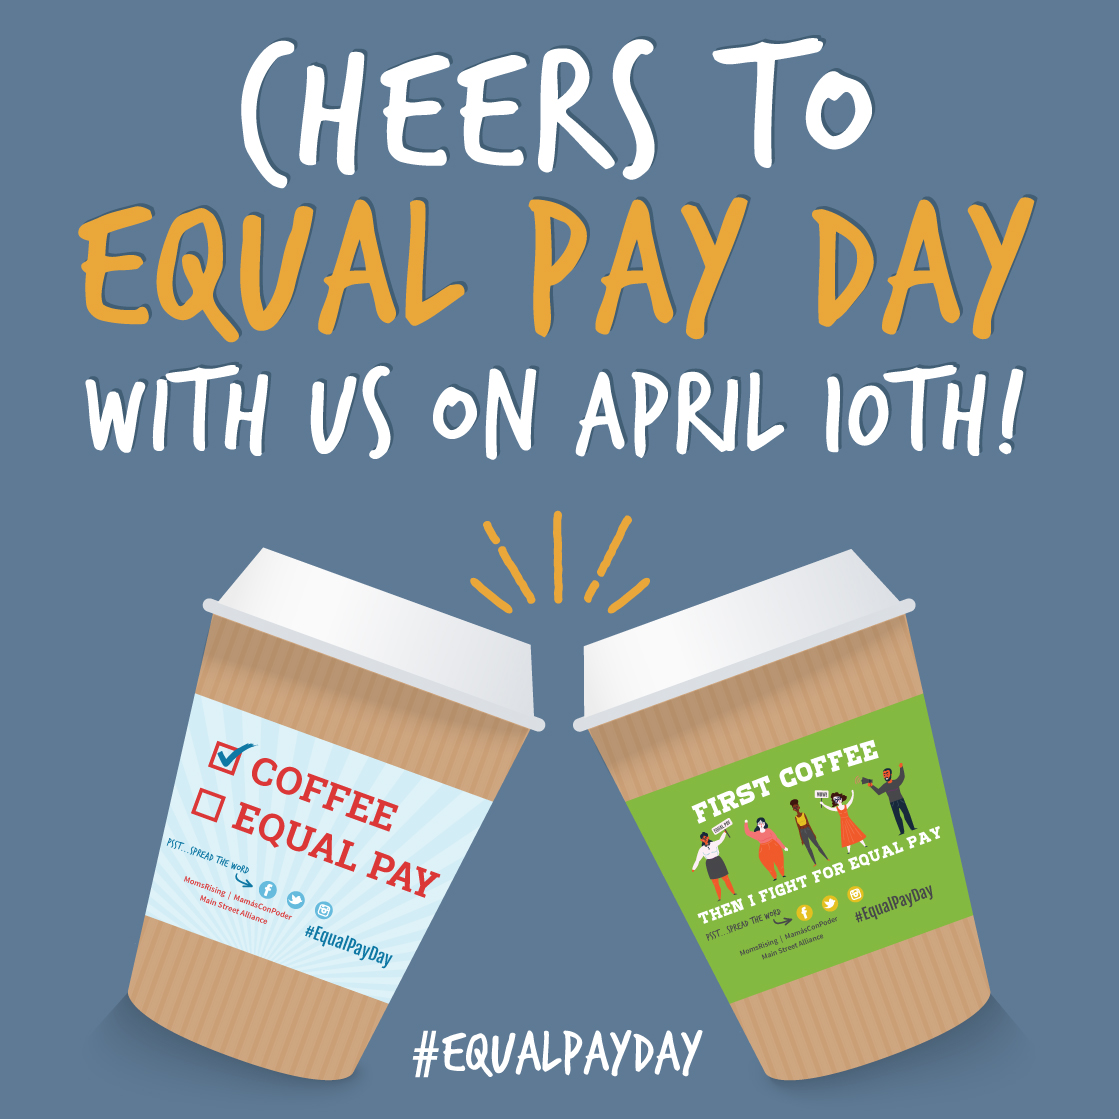 Women's wages fuel our businesses, economy, and most importantly -- many working families. That's why MomsRising teamed up with Main Street Alliance to mark equal pay day with a fun and high-impact gimmick. Over thirty coffee shops and other small businesses will be using our custom coffee sleeves and napkins on April 10th -- Equal Pay Day, the day when ALL women's wages catch up with what men made in the twelve months of 2017 alone. Learn more including a list of participating coffee shops  here .